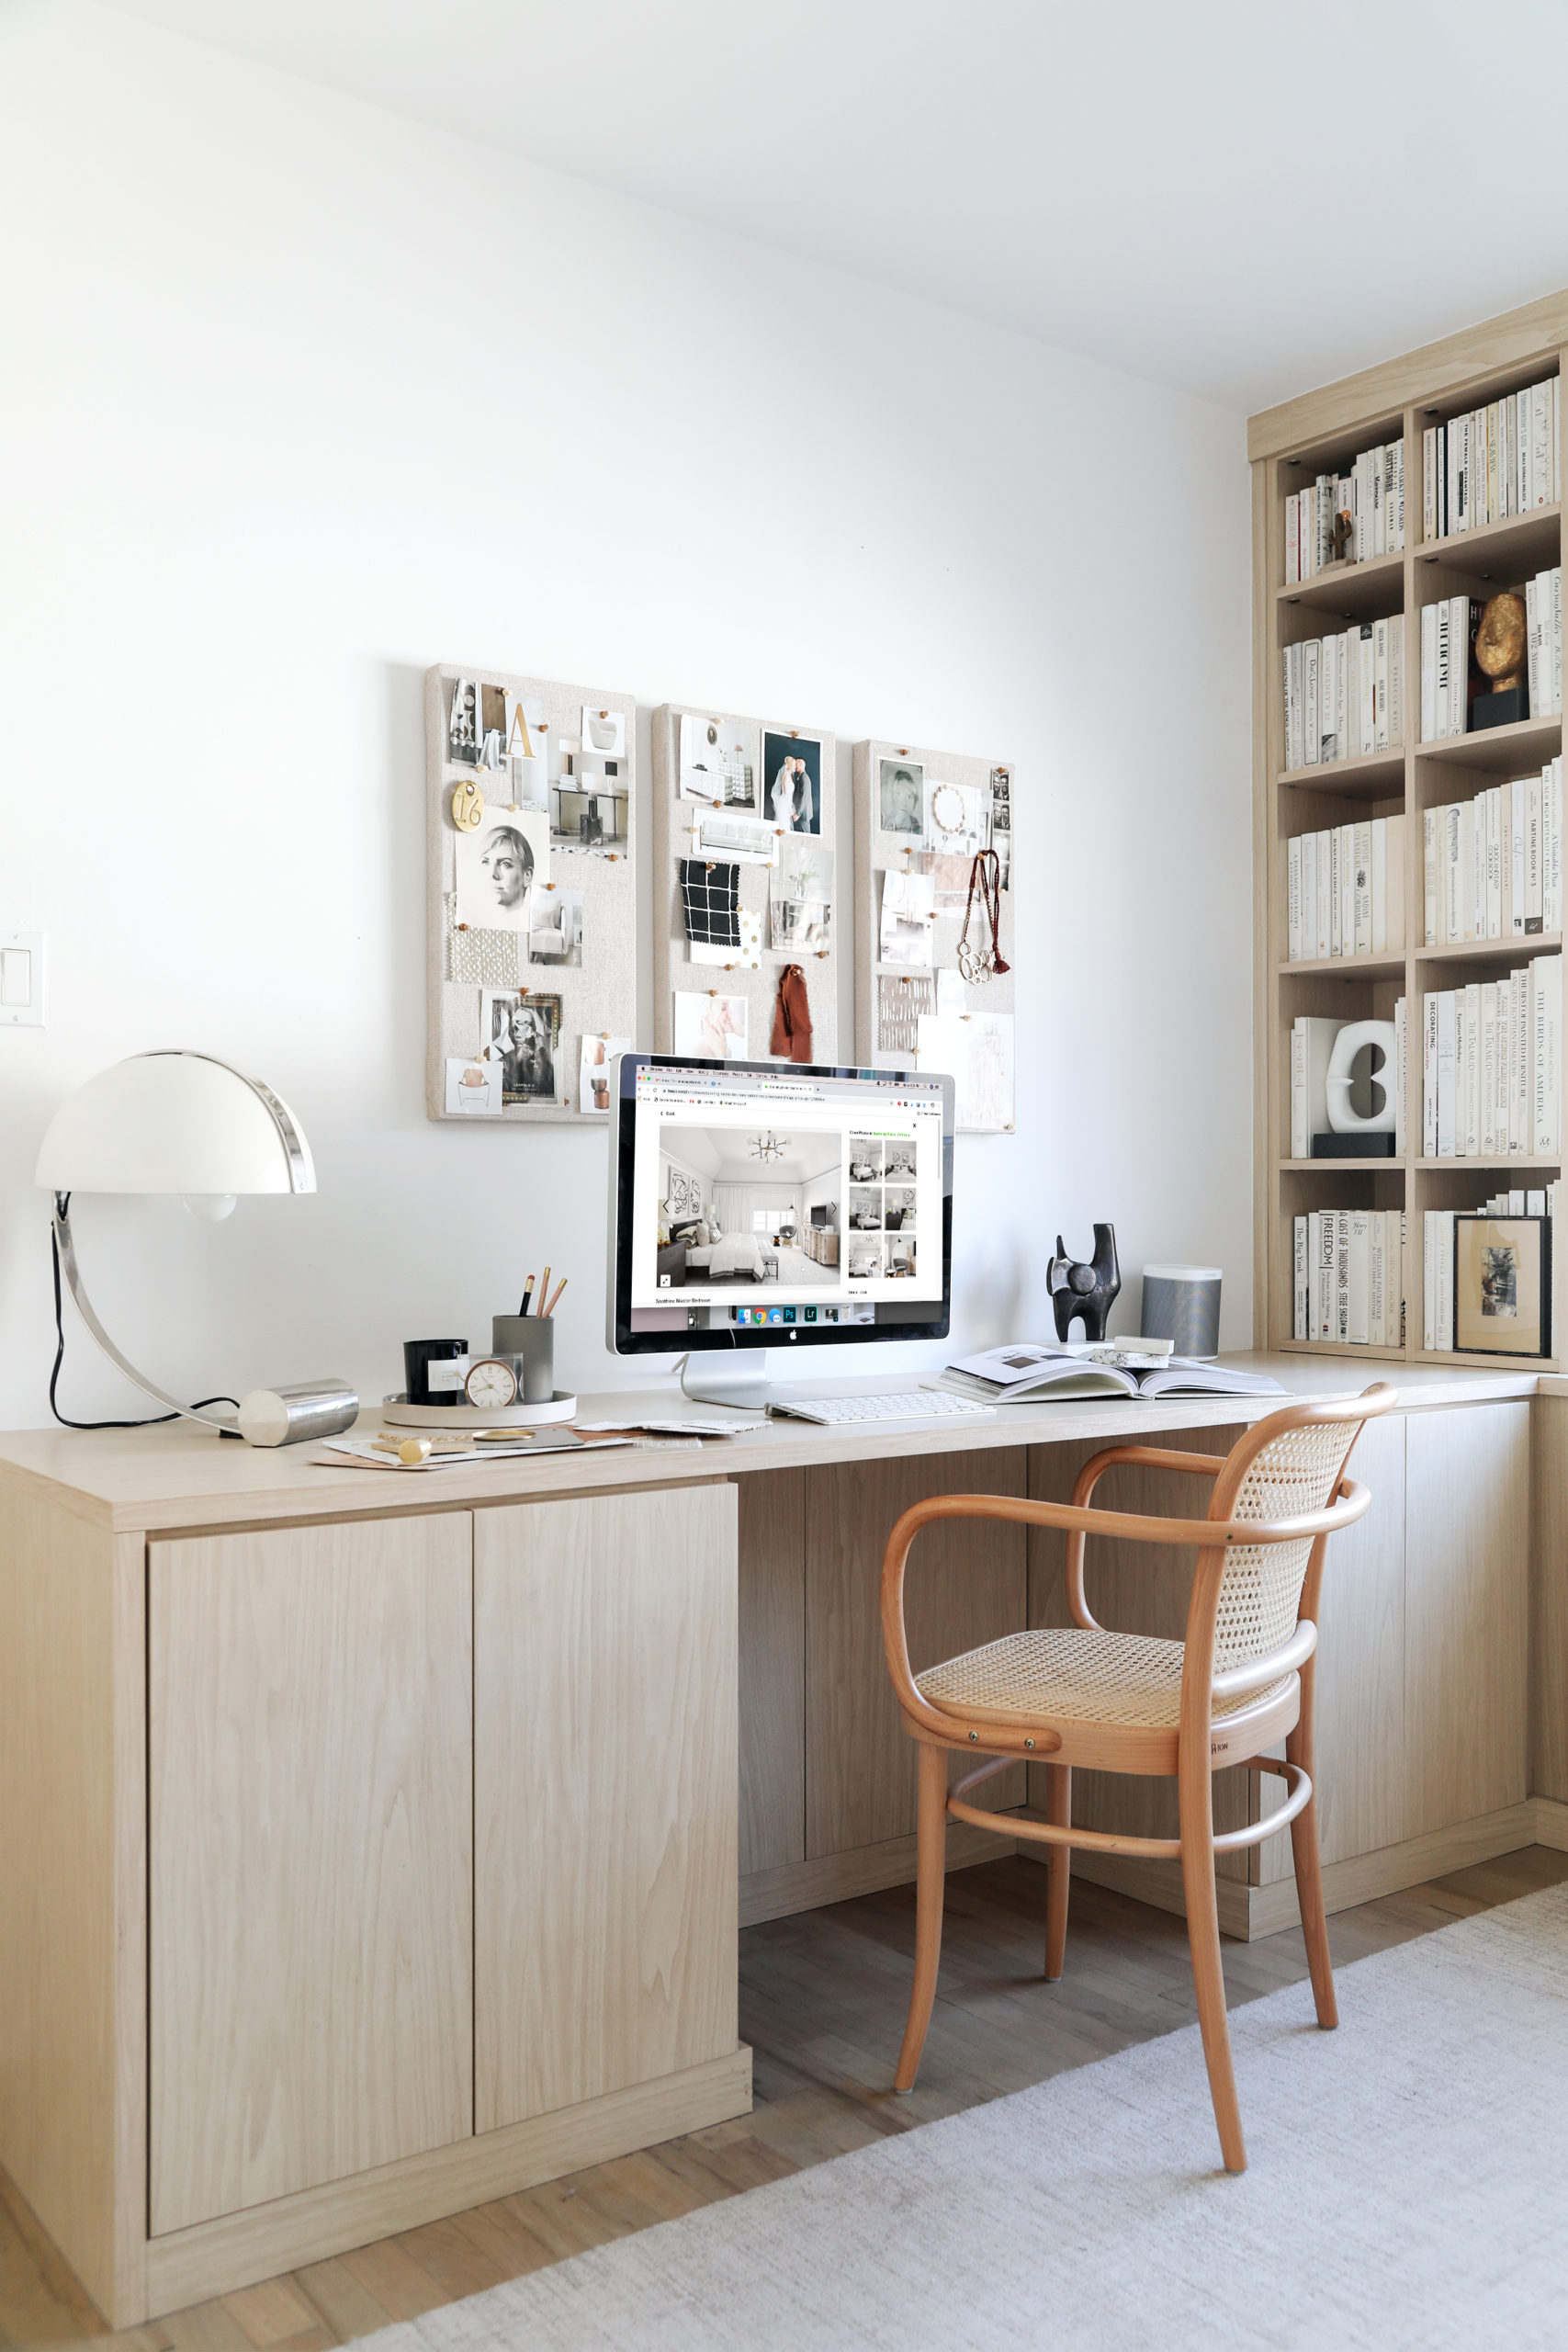 anne sage office with california closets built-in shelves